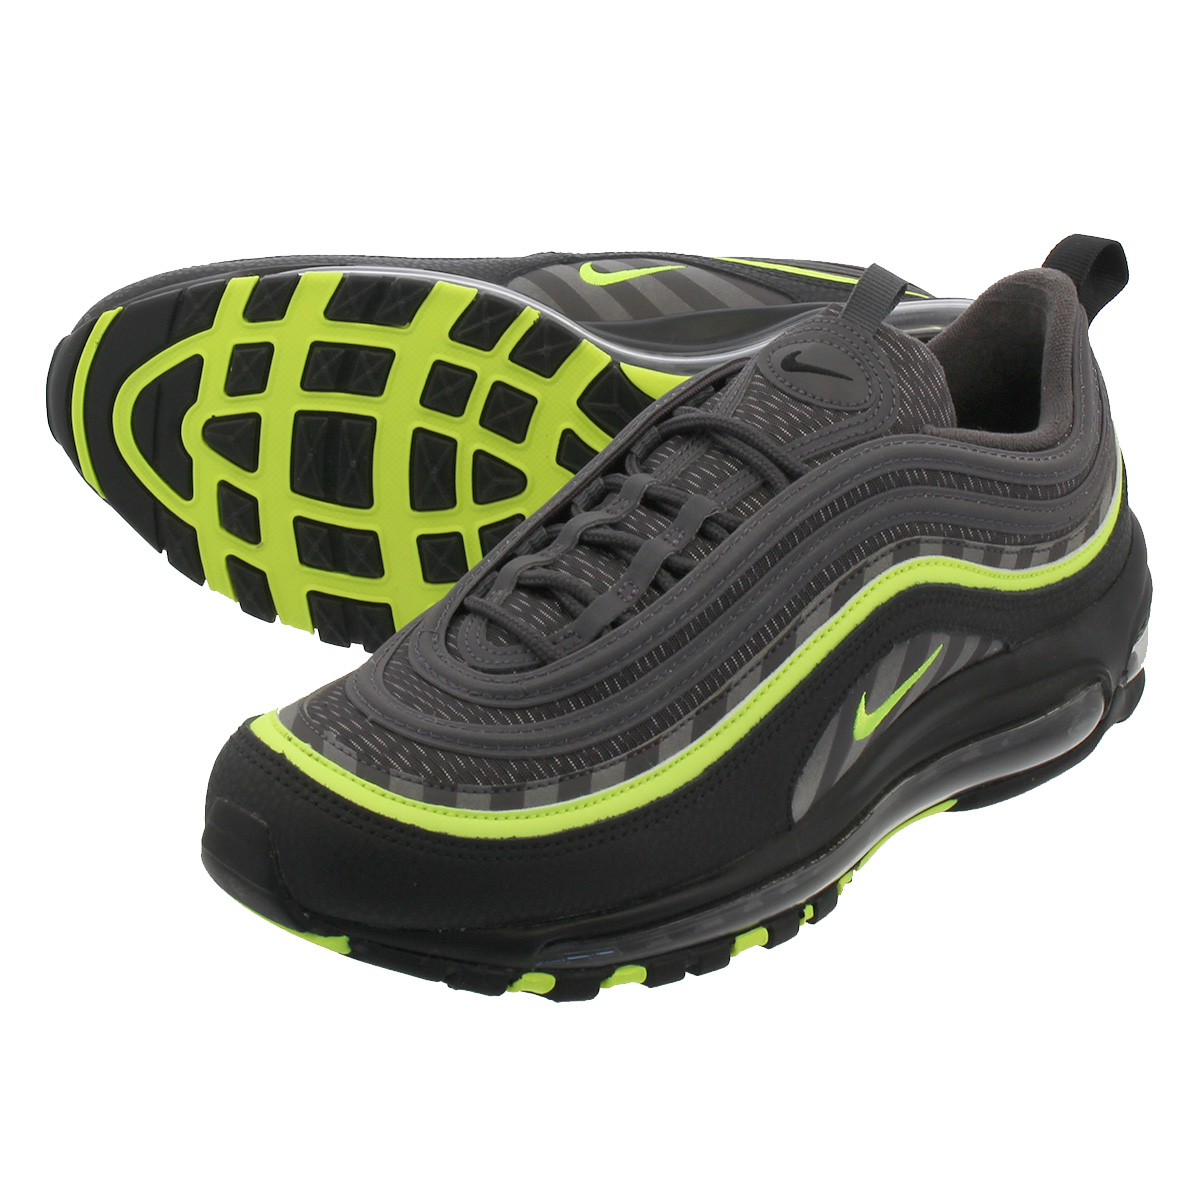 31296cfda8 LOWTEX PLUS: NIKE AIR MAX 97 Kie Ney AMAX 97 THUNDER GREY/LIME BLAST  bv6057-001 | Rakuten Global Market